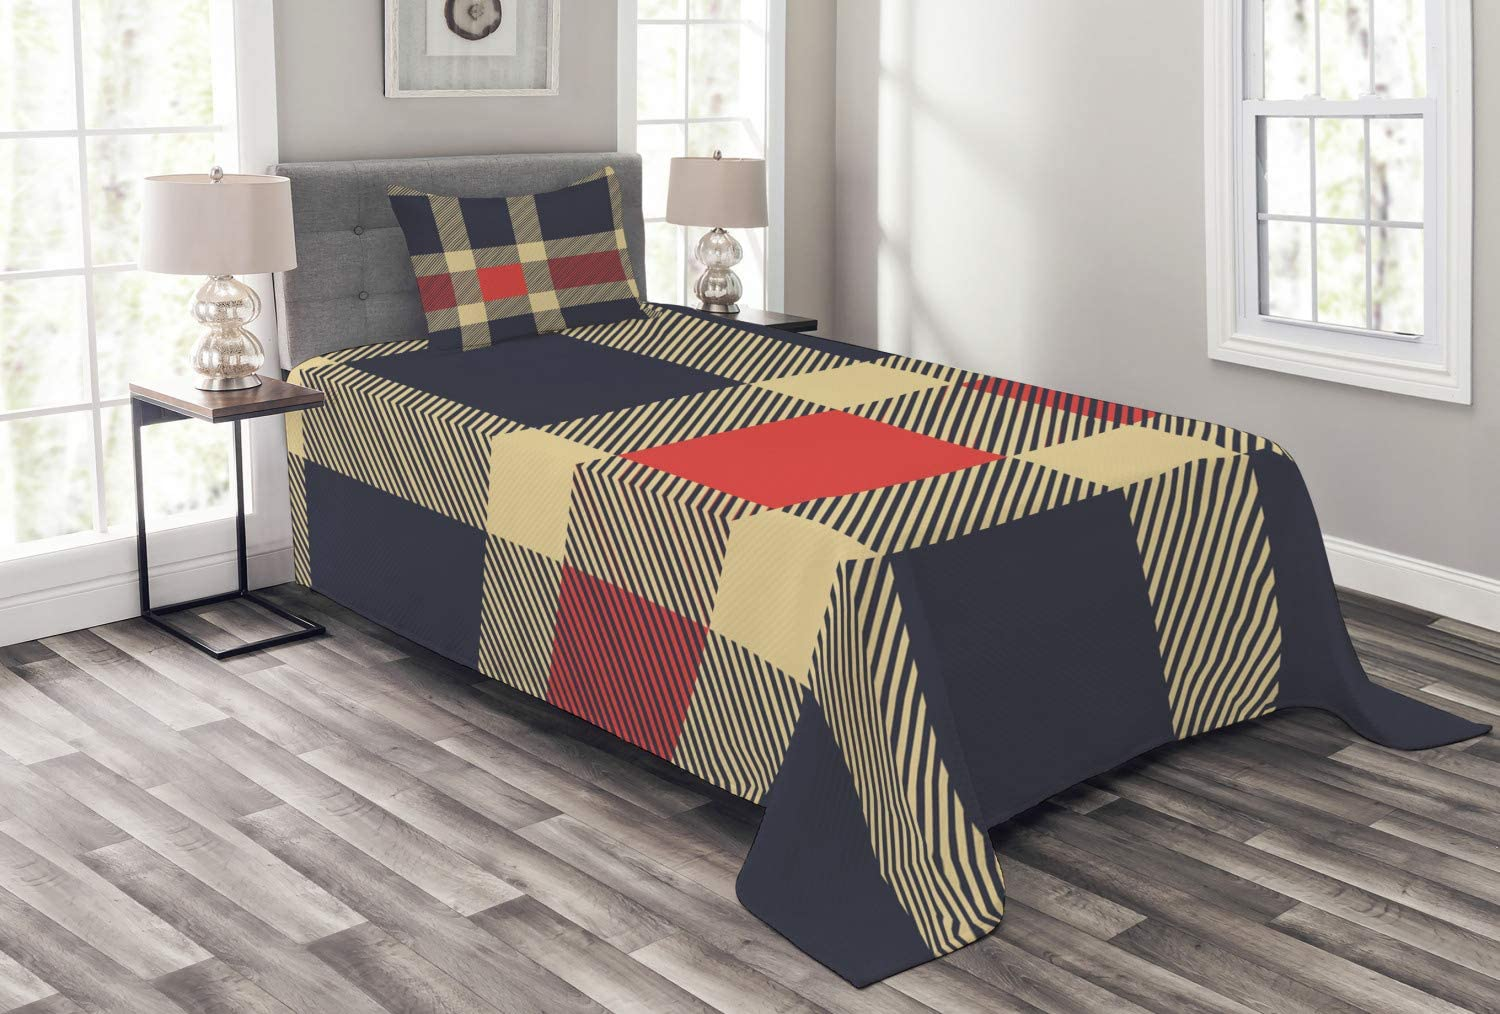 Ambesonne Checkered Bedspread, Vintage Plaid Scottish Tartan Pattern with Retro Display Checks Lines, Decorative Quilted 2 Piece Coverlet Set with Pillow Sham, Twin Size, Blue Coral